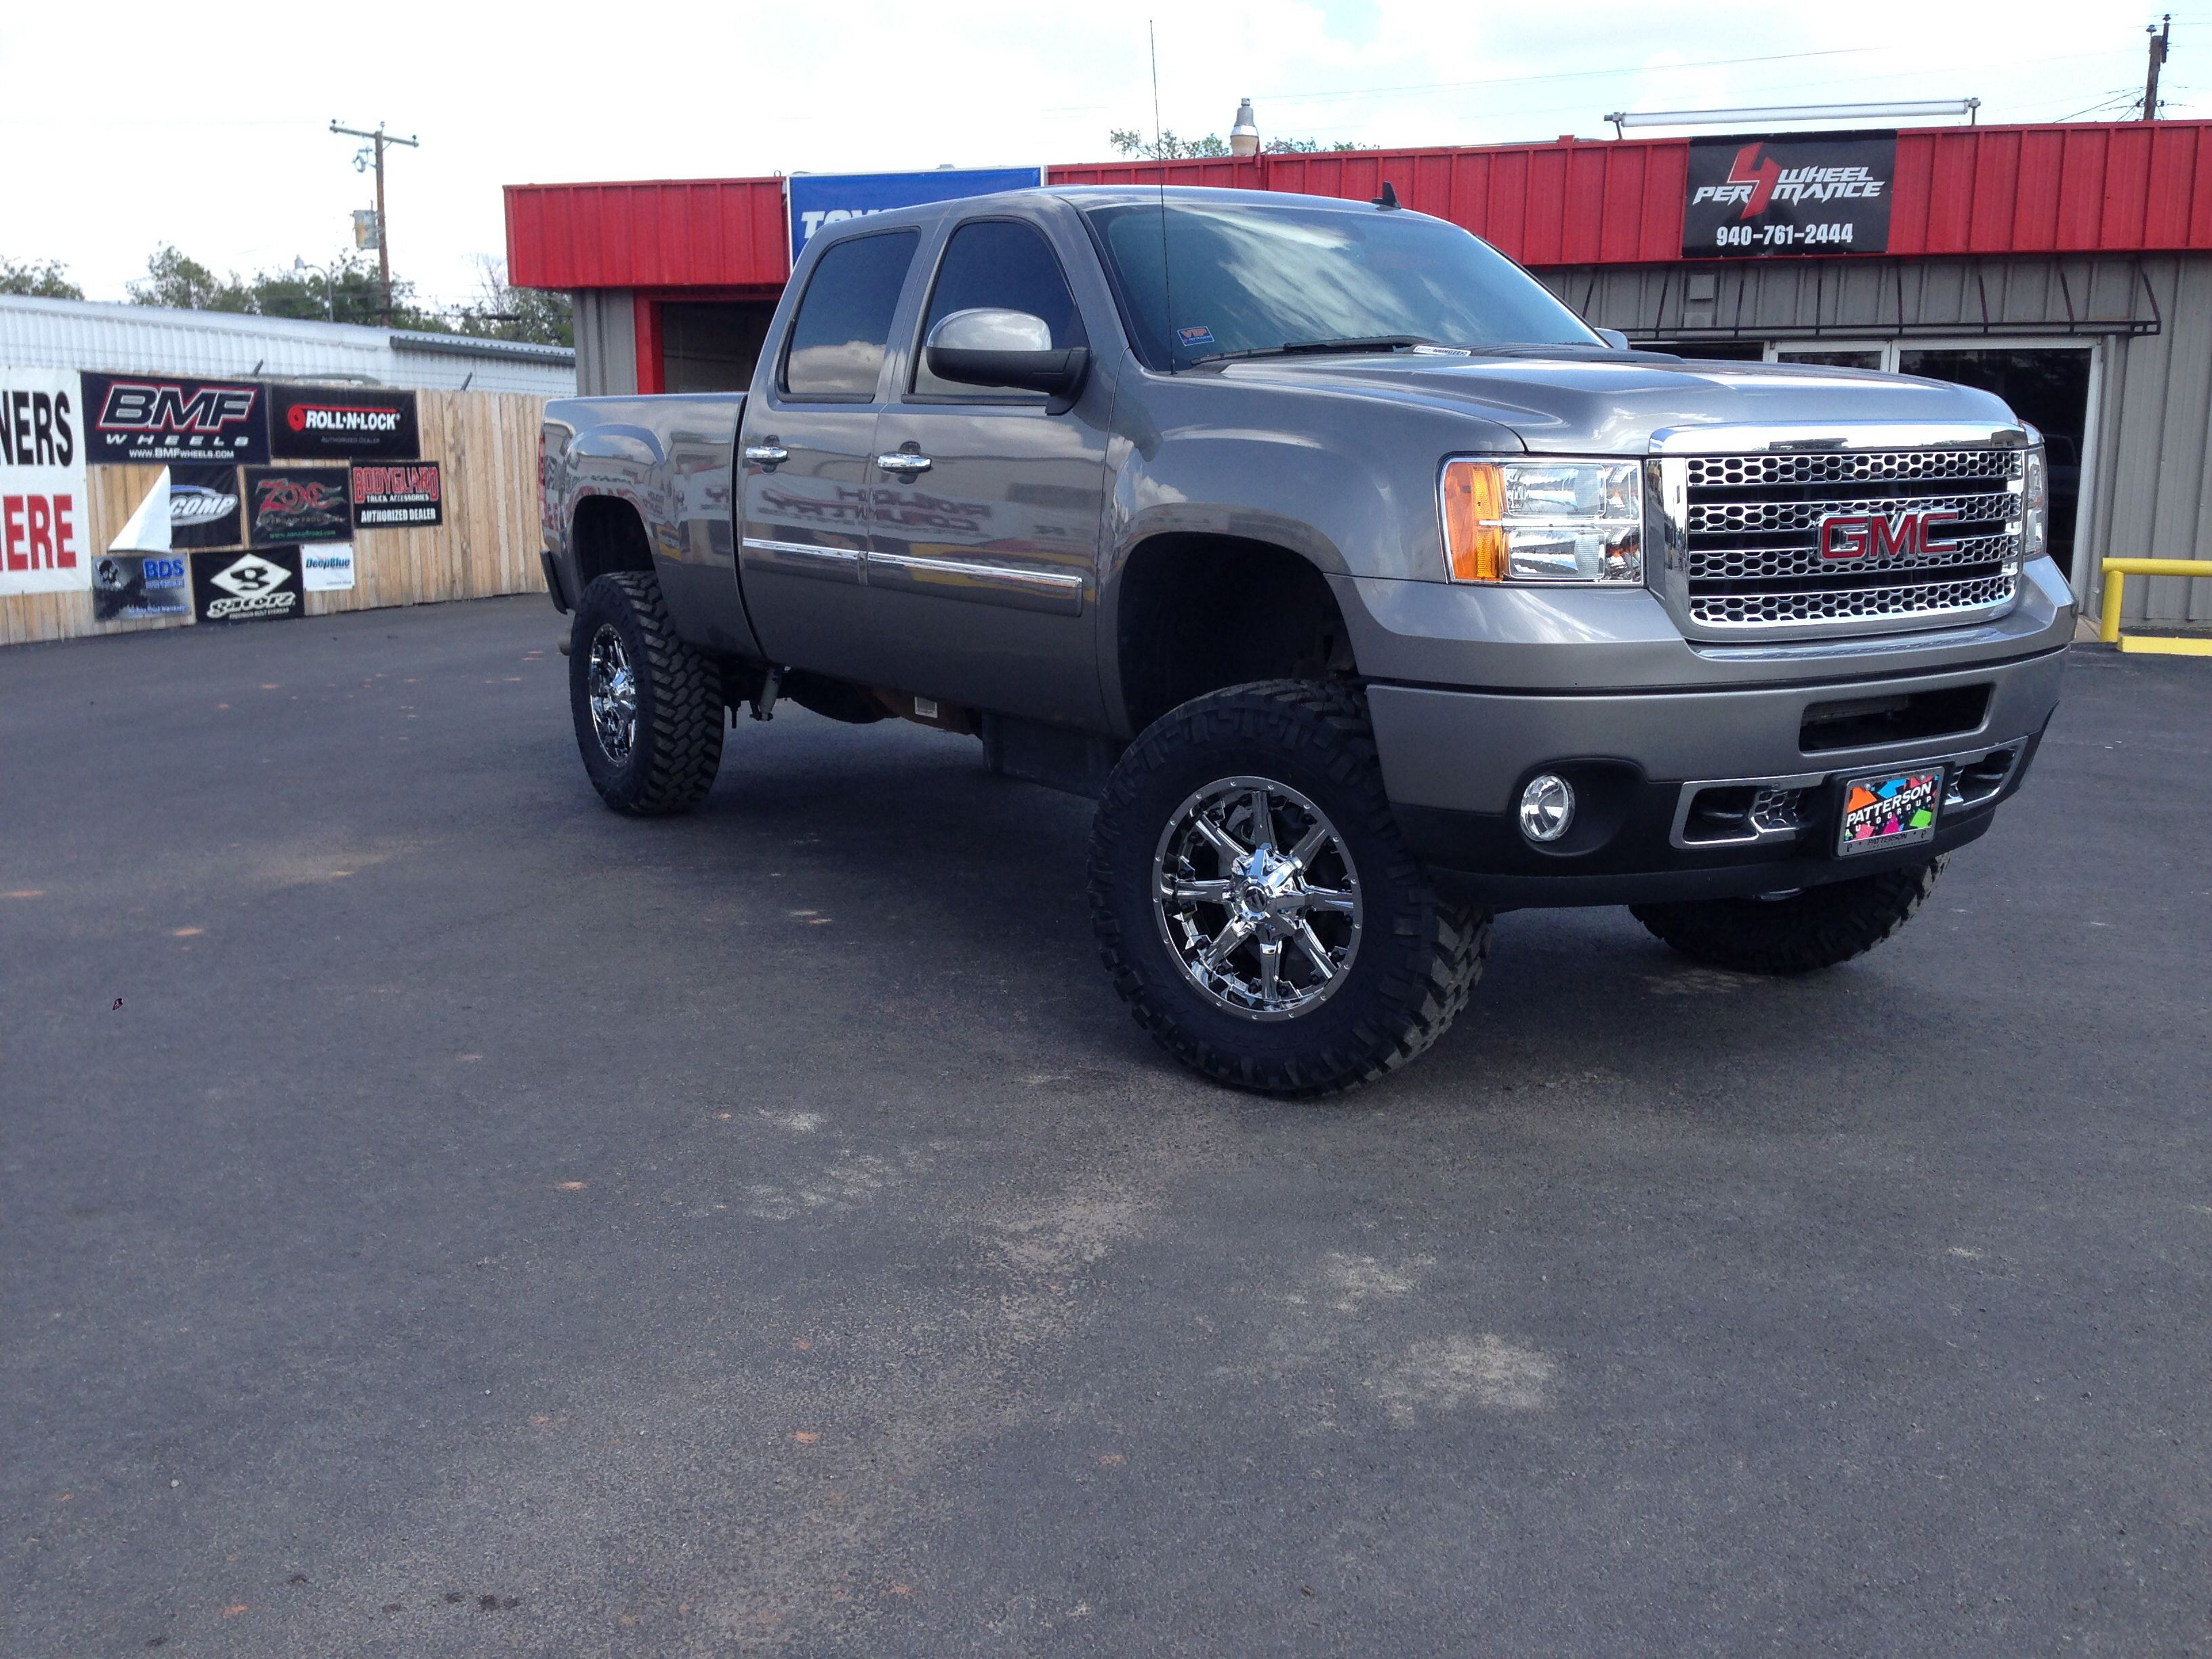 2013 gmc sierra 2500 hd 6 5 bds lift 20 fuel wheels nitto mts project photos. Black Bedroom Furniture Sets. Home Design Ideas